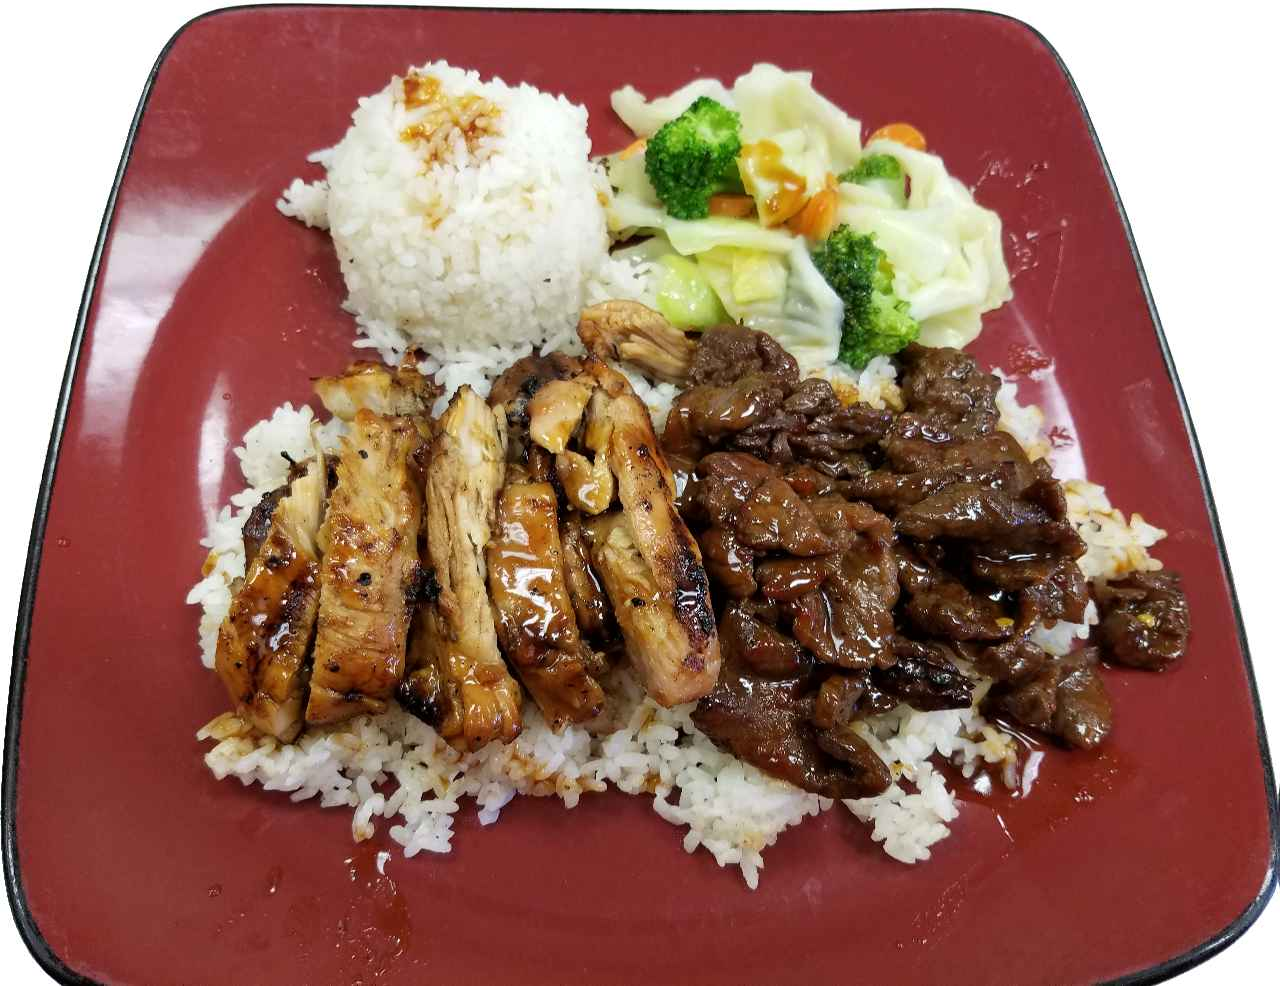 11. Teriyaki Chicken with Beef or Pork